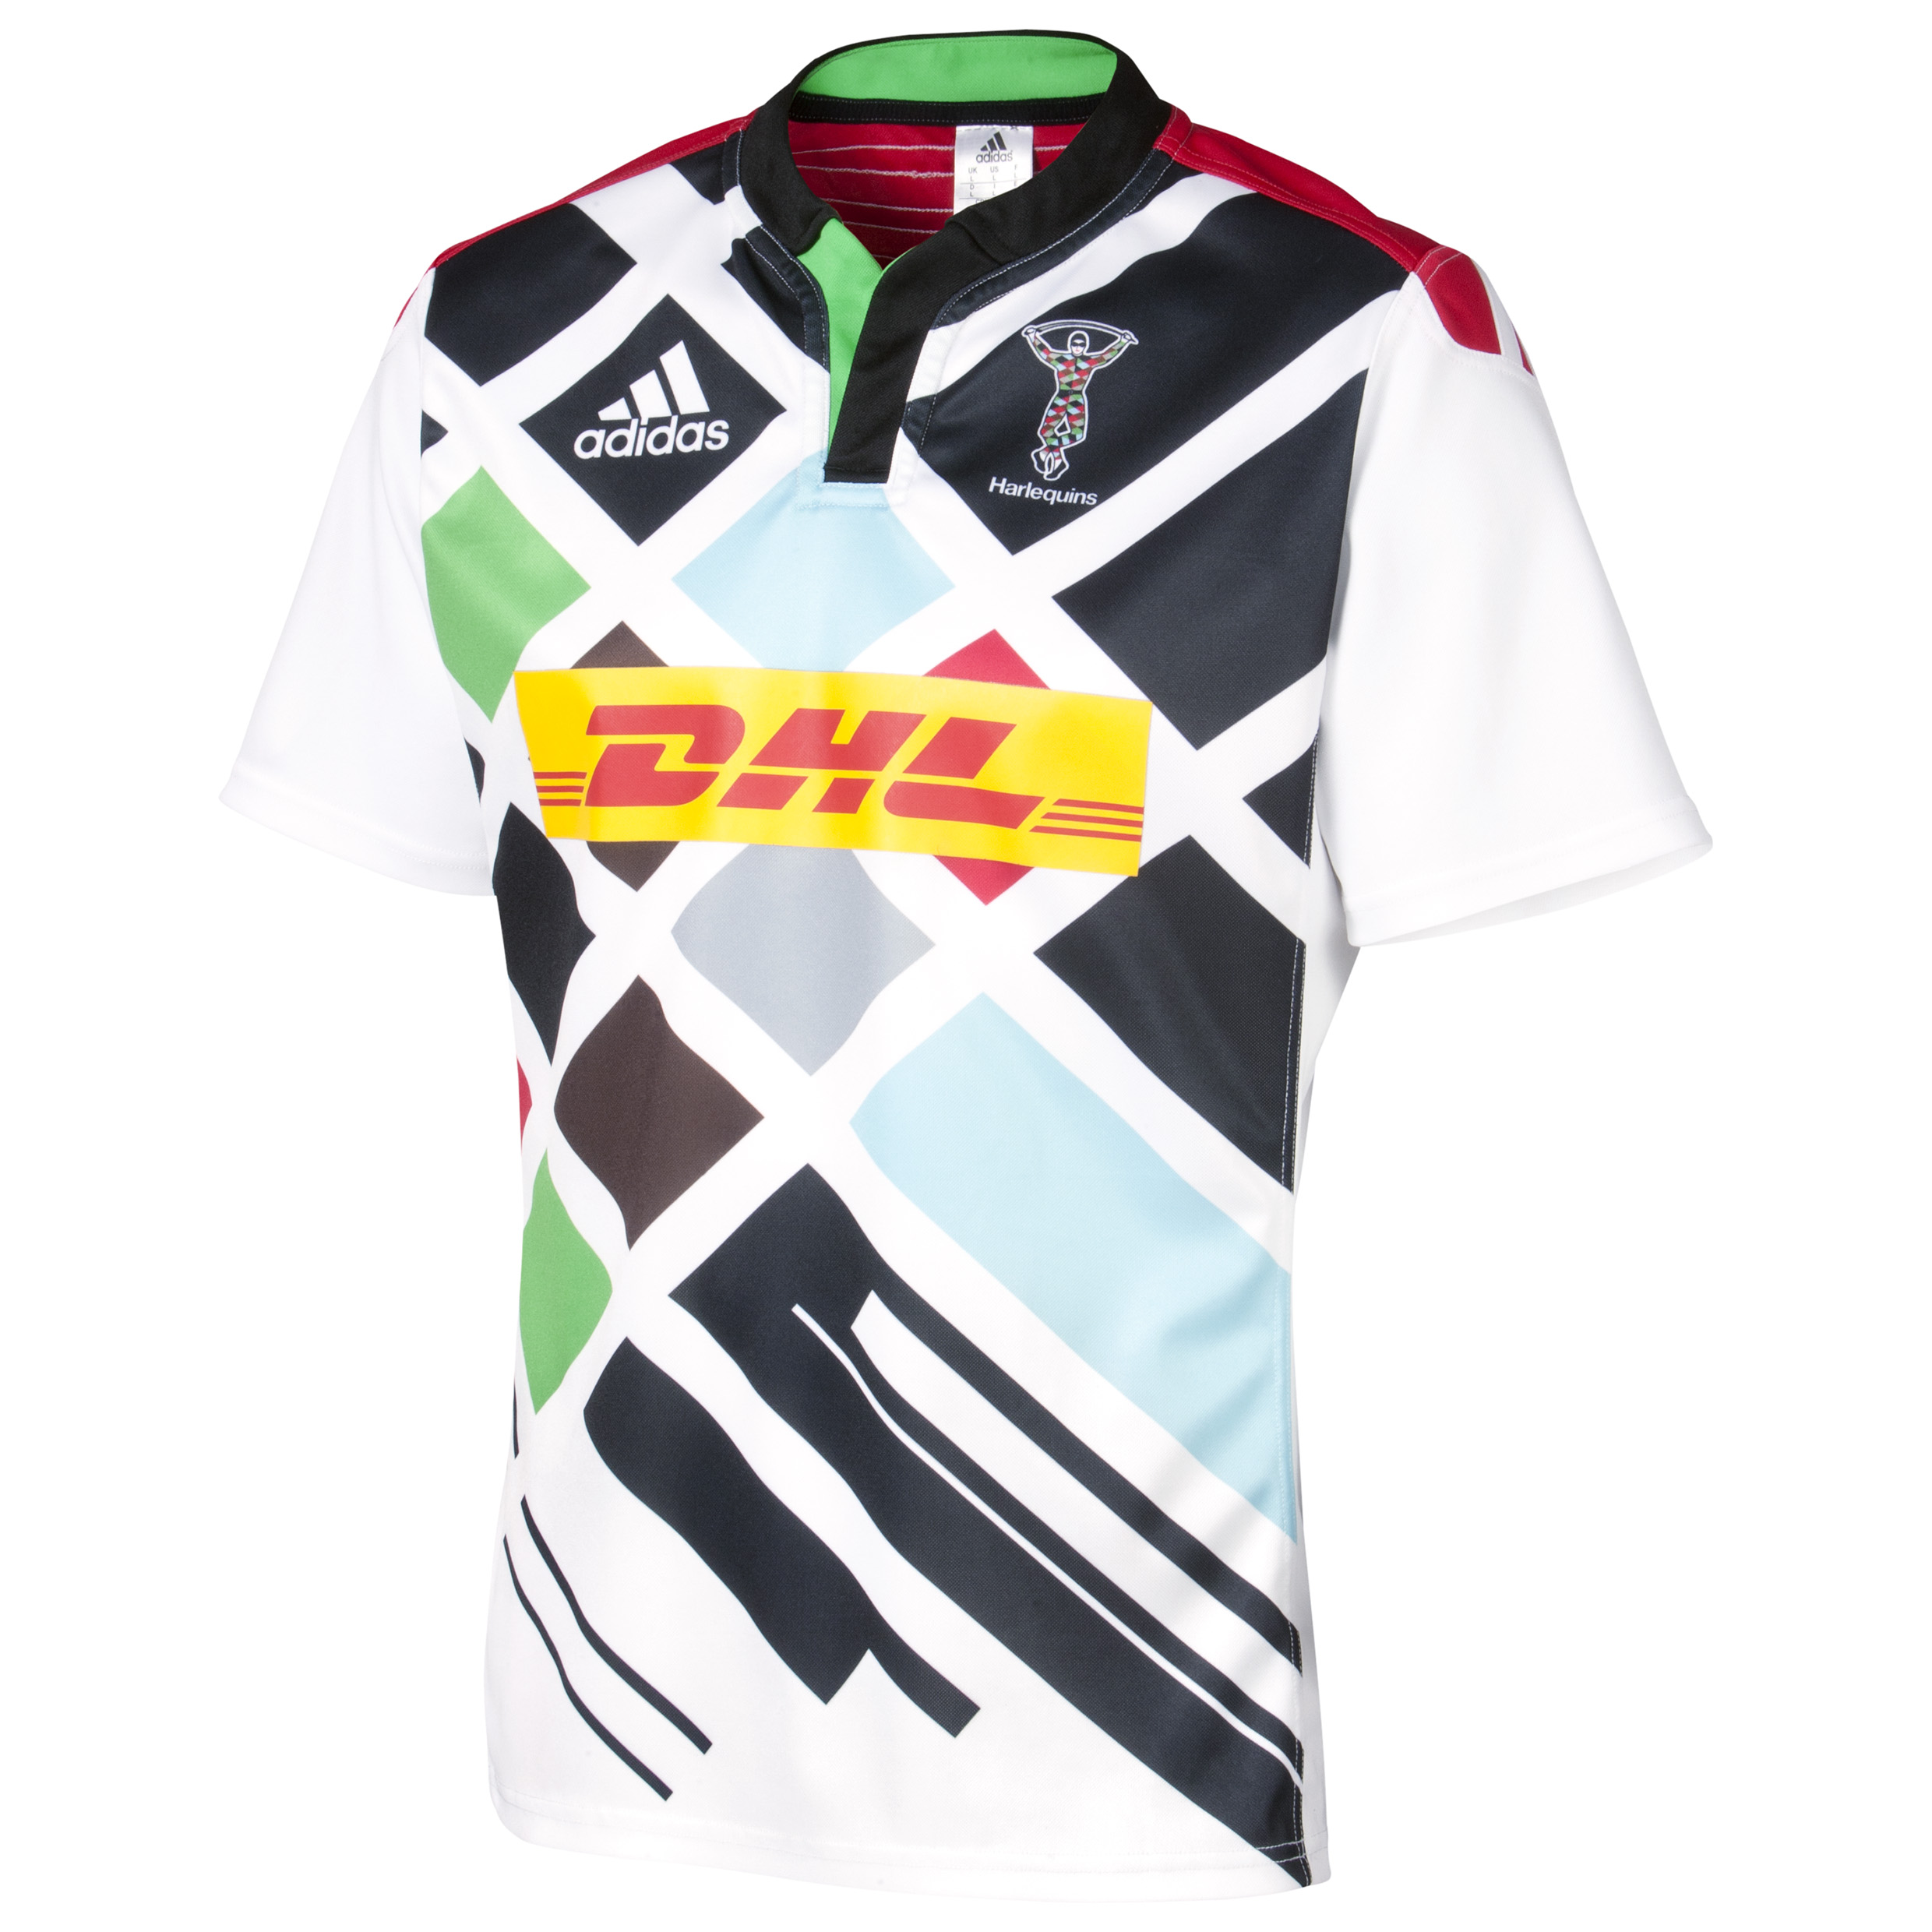 Harlequins Away Short Sleeve Shirt 2014/15 White